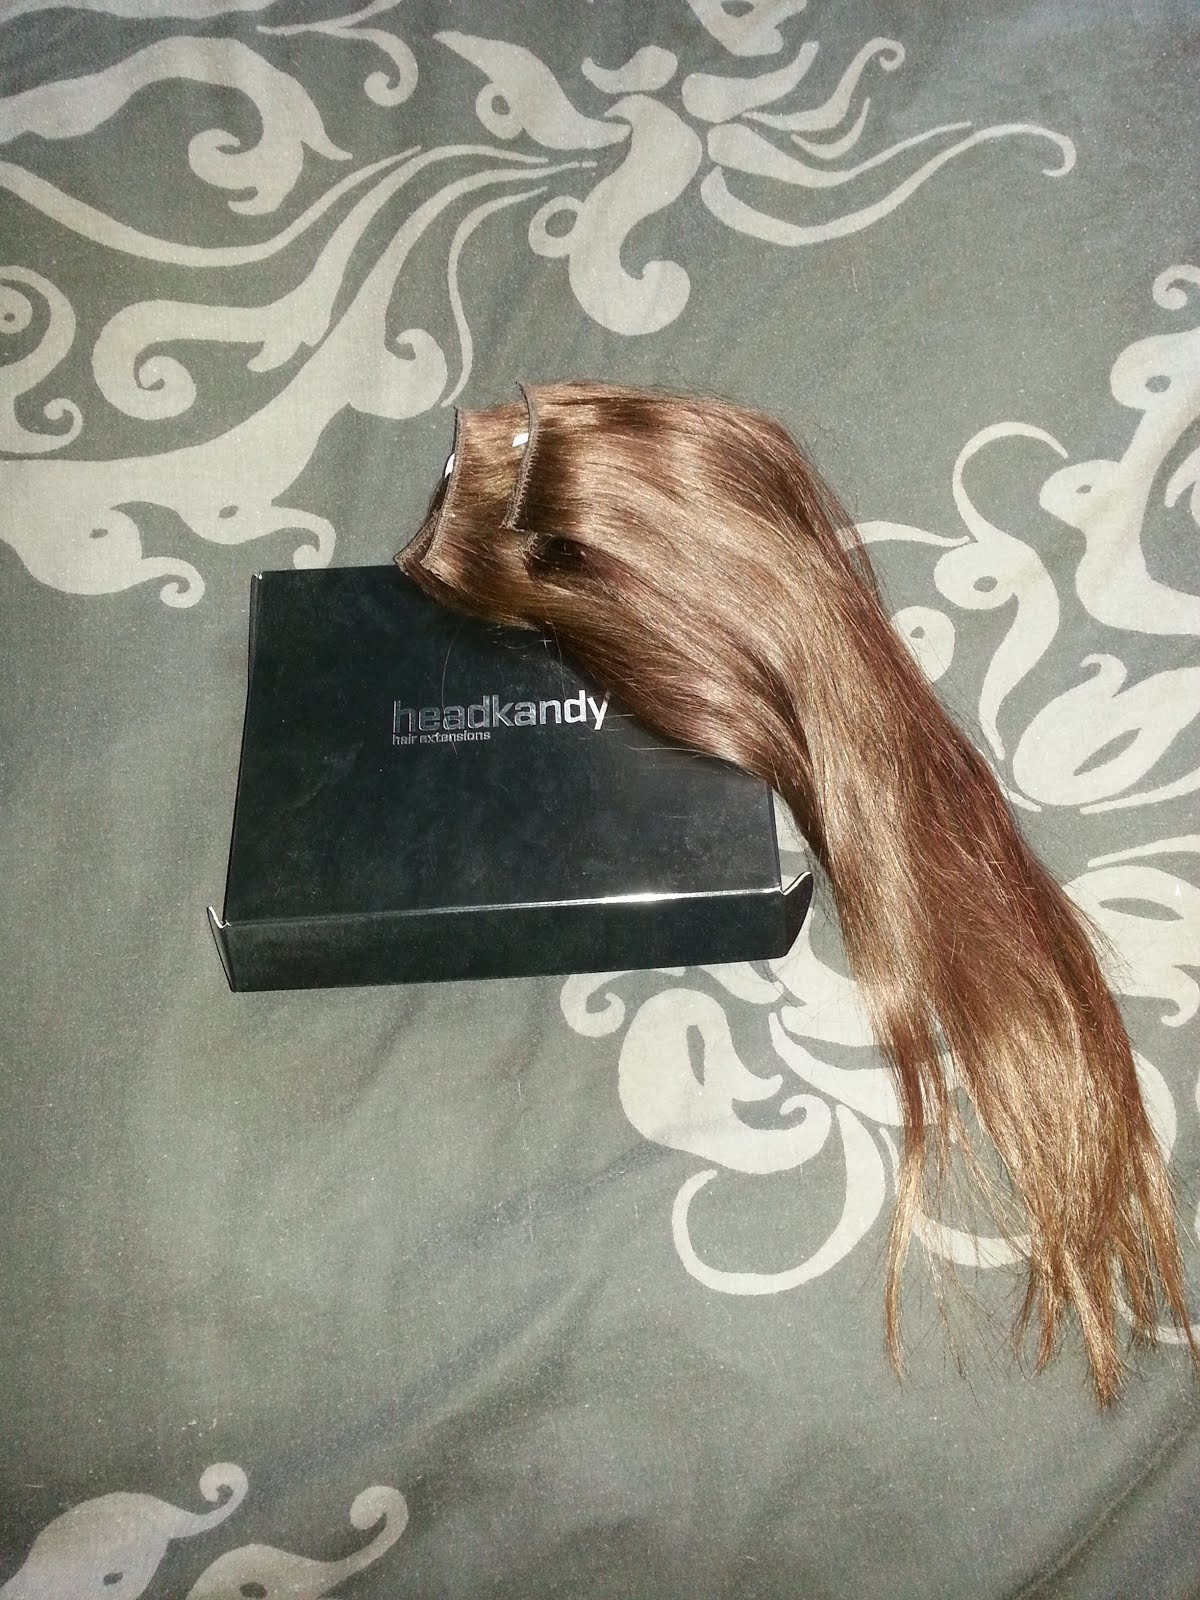 Bryony jordan headkandy hair extensions review this picture shows the packaging the extensions were in and the extensions themselves there was also additional packaging that the extensions were enclosed pmusecretfo Gallery